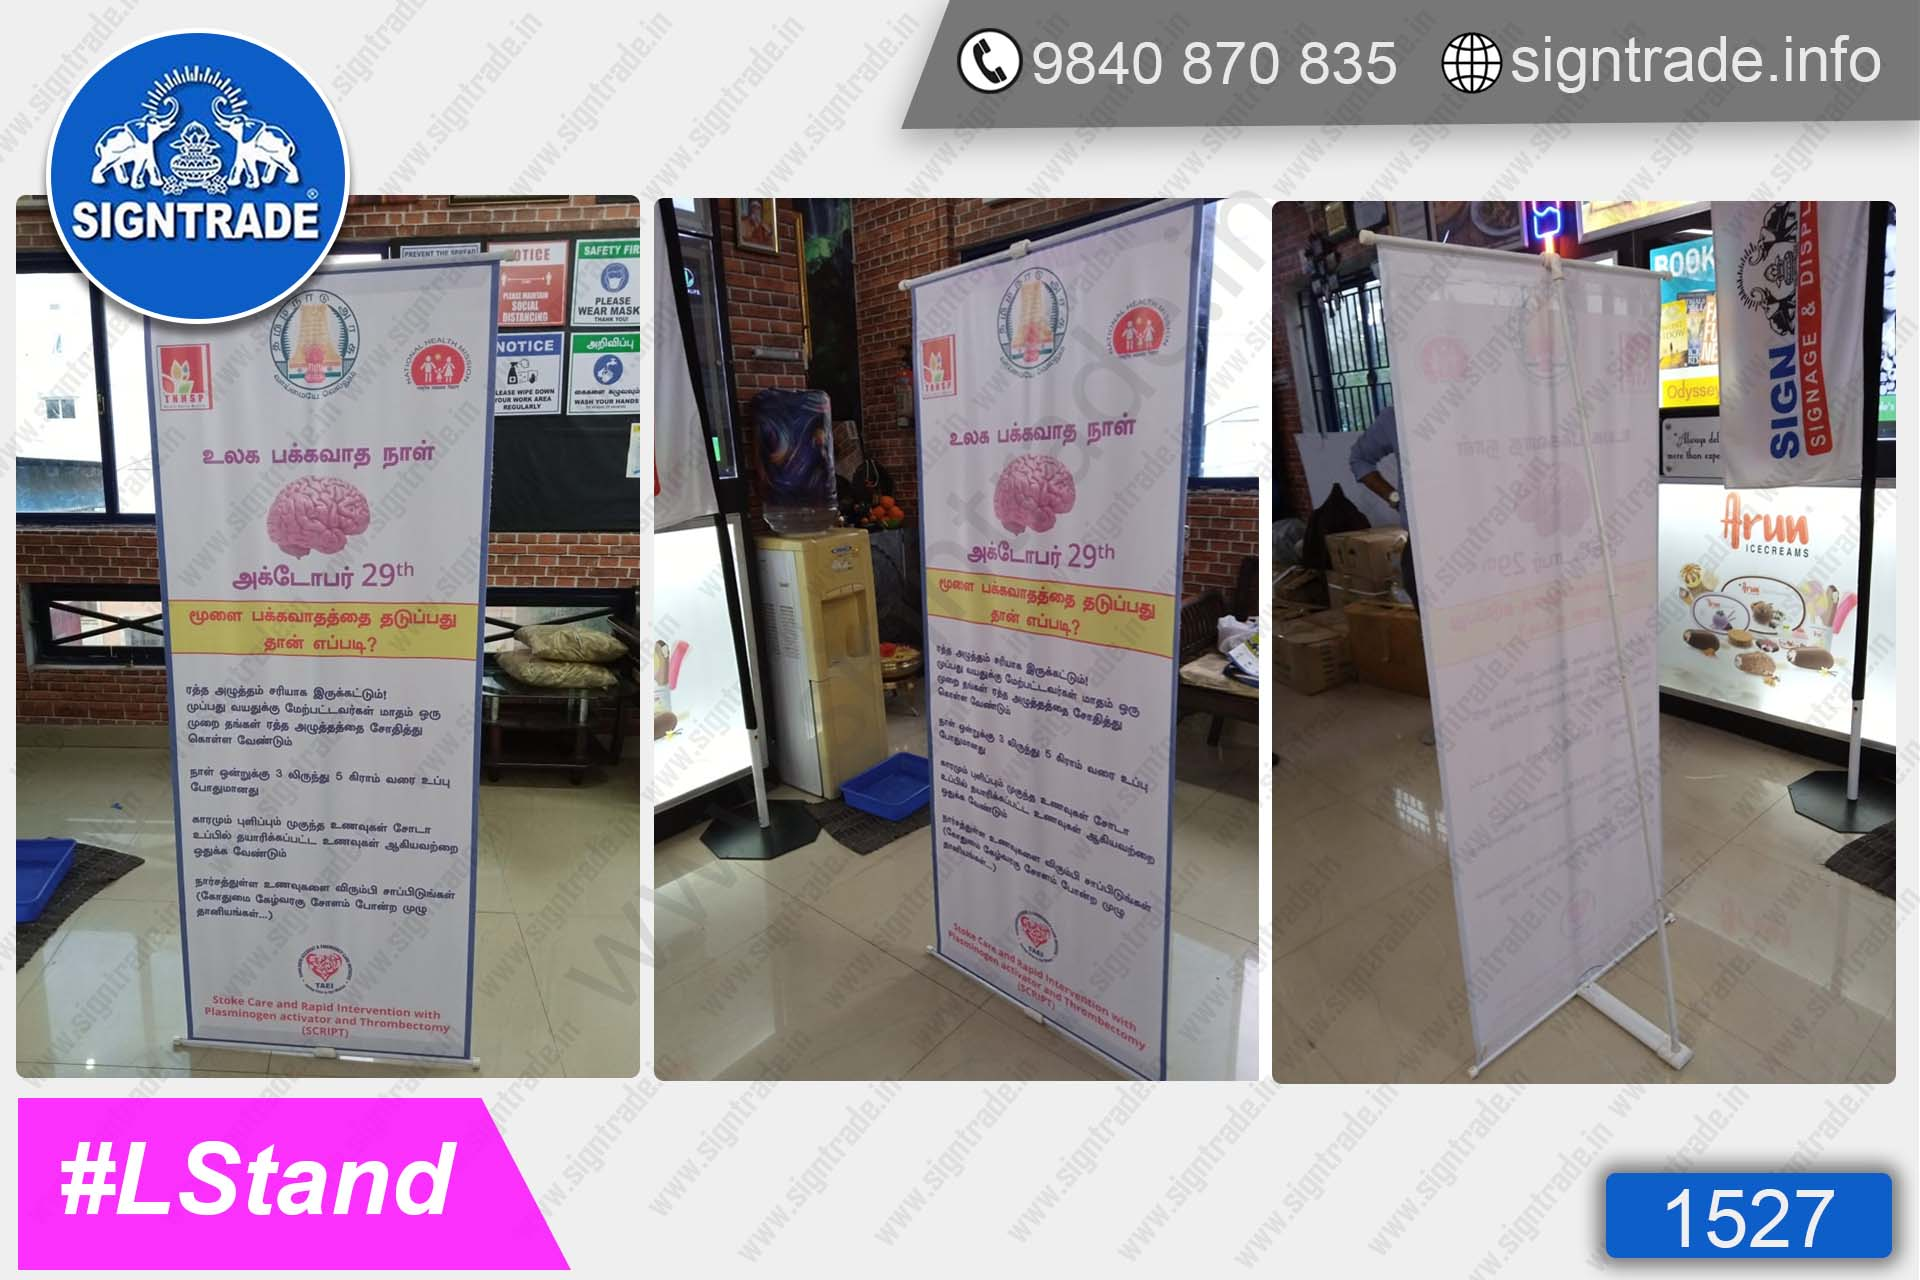 International Stroke Day, Chennai - SIGNTRADE - Digital Printing Services - L Stand - Roll Up Banner Stand Manufacturer in Chennai